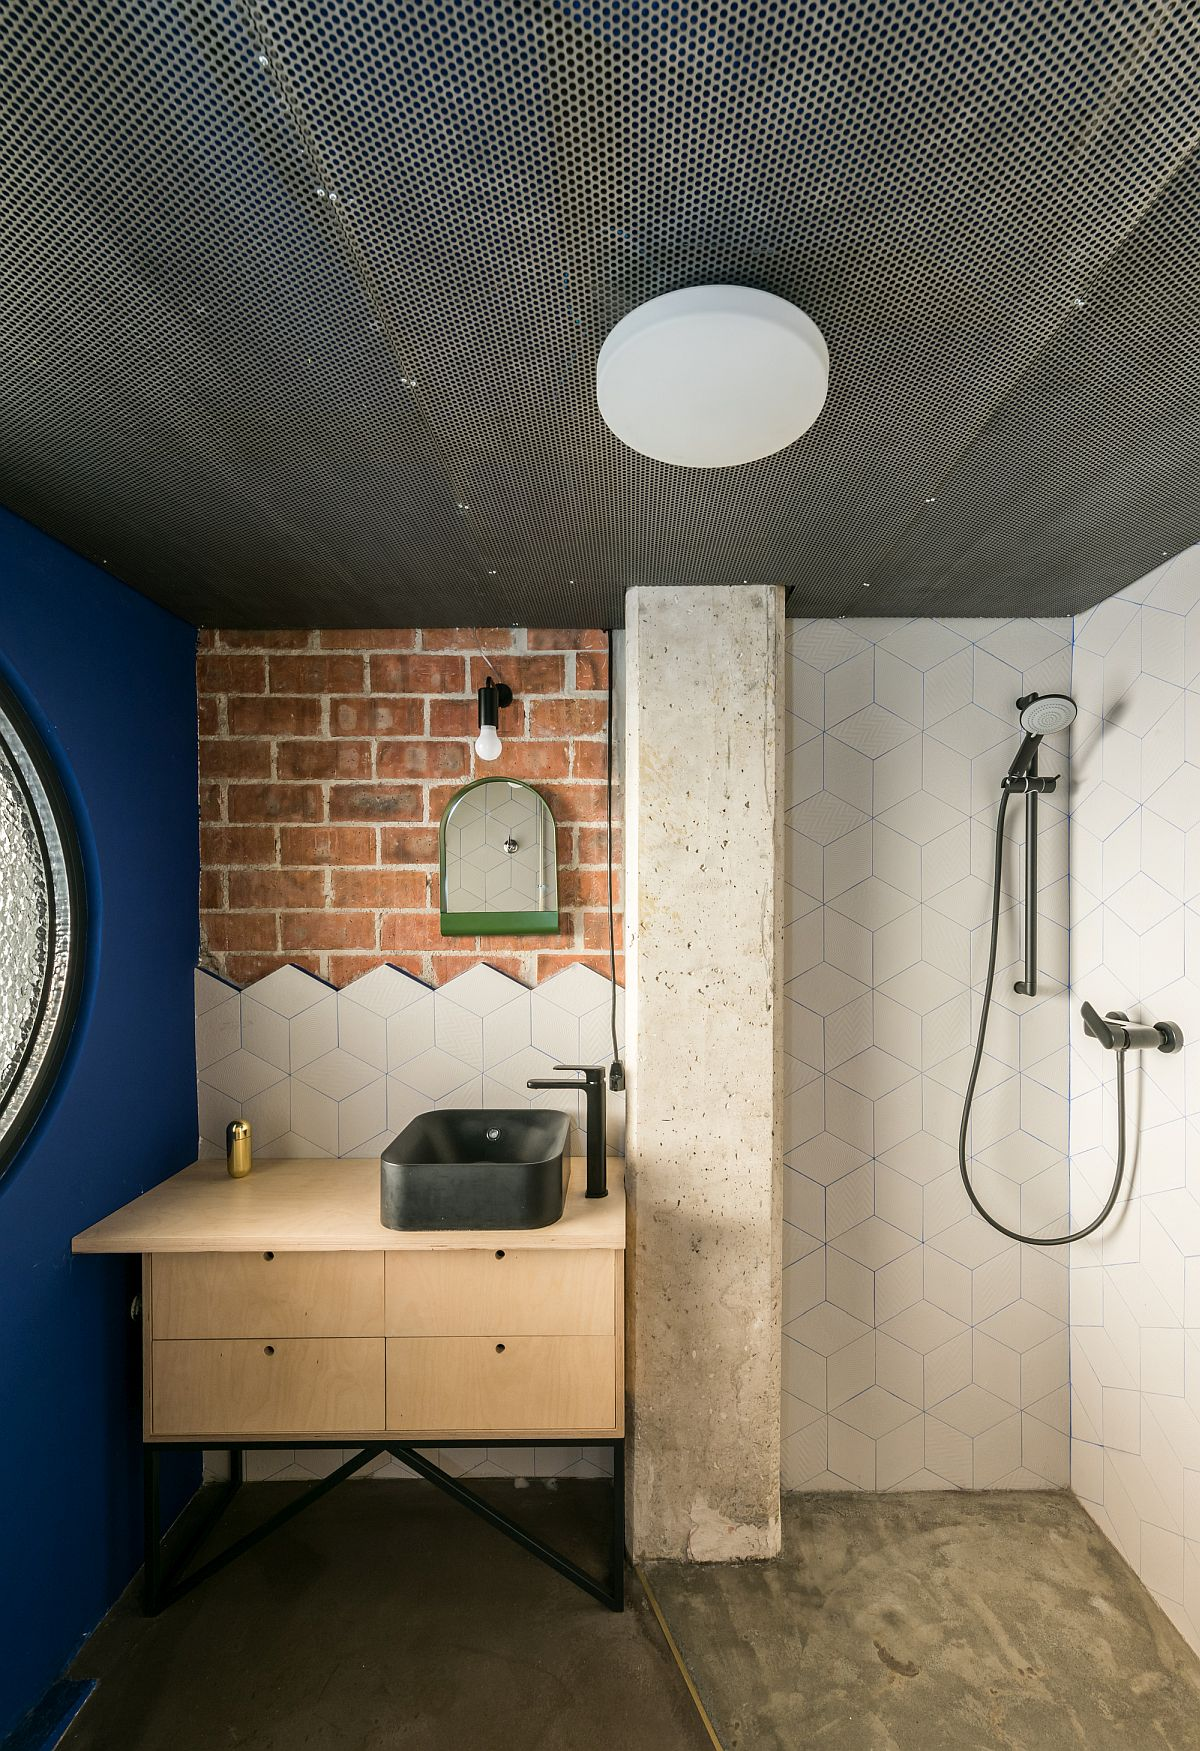 Beautiful modern industrial bathroom with plenty of pattern and textural contrast